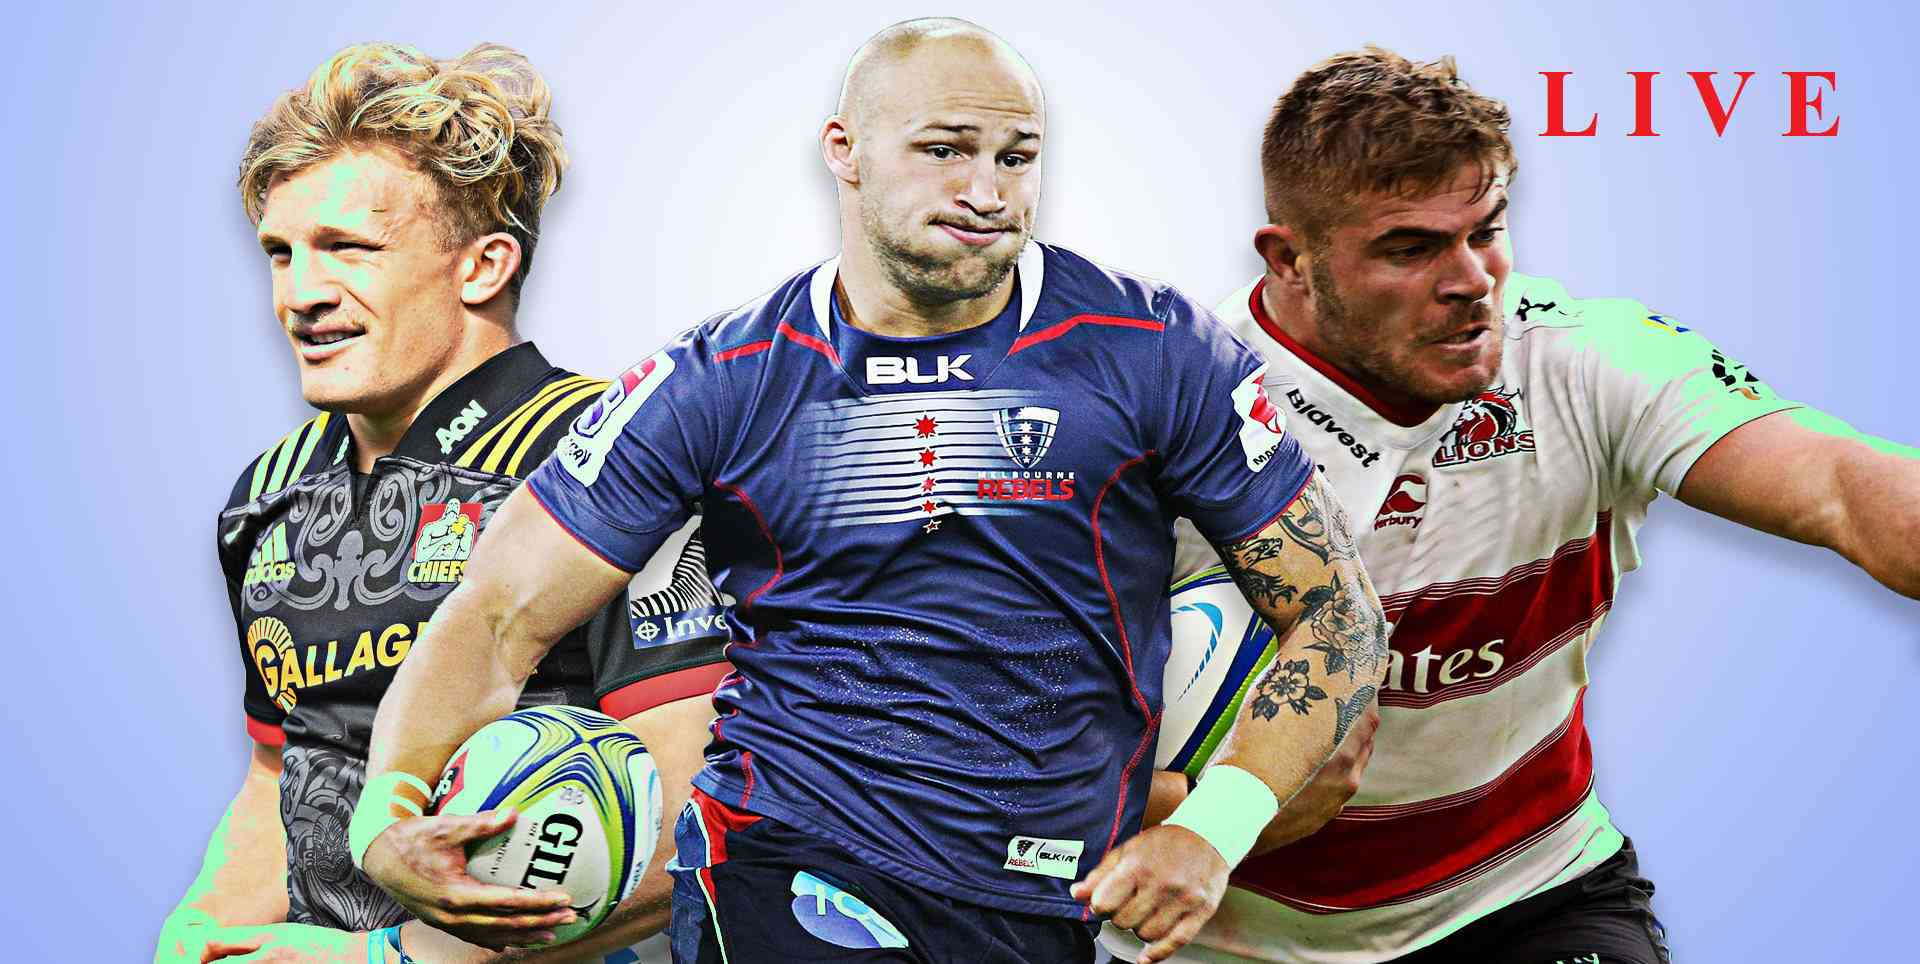 crusaders-vs-lions-rugby-final-live-stream